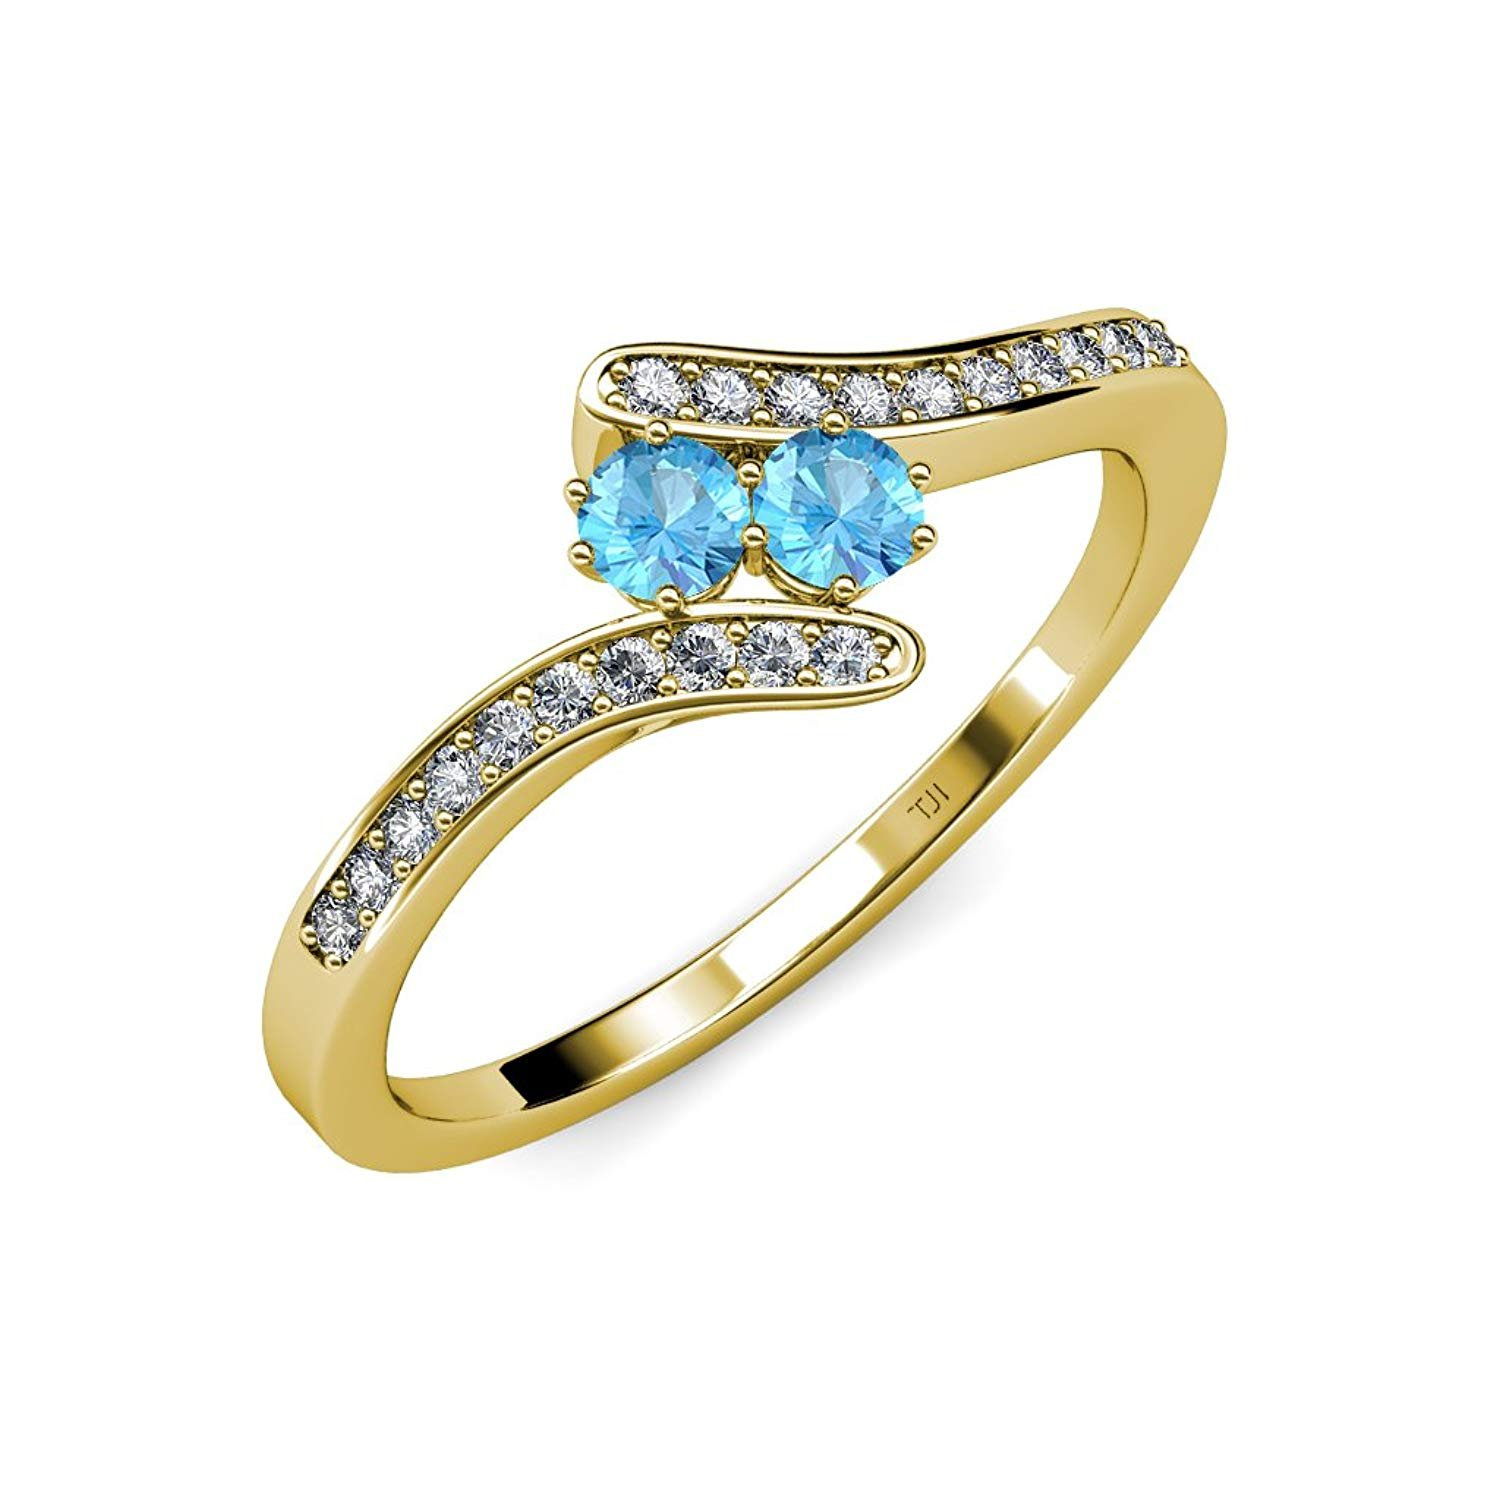 Blue Topaz 2 Stone with Side Diamonds Bypass Engagement Ring 0.74 ct tw in 14K Yellow Gold.size 7.0 by TriJewels